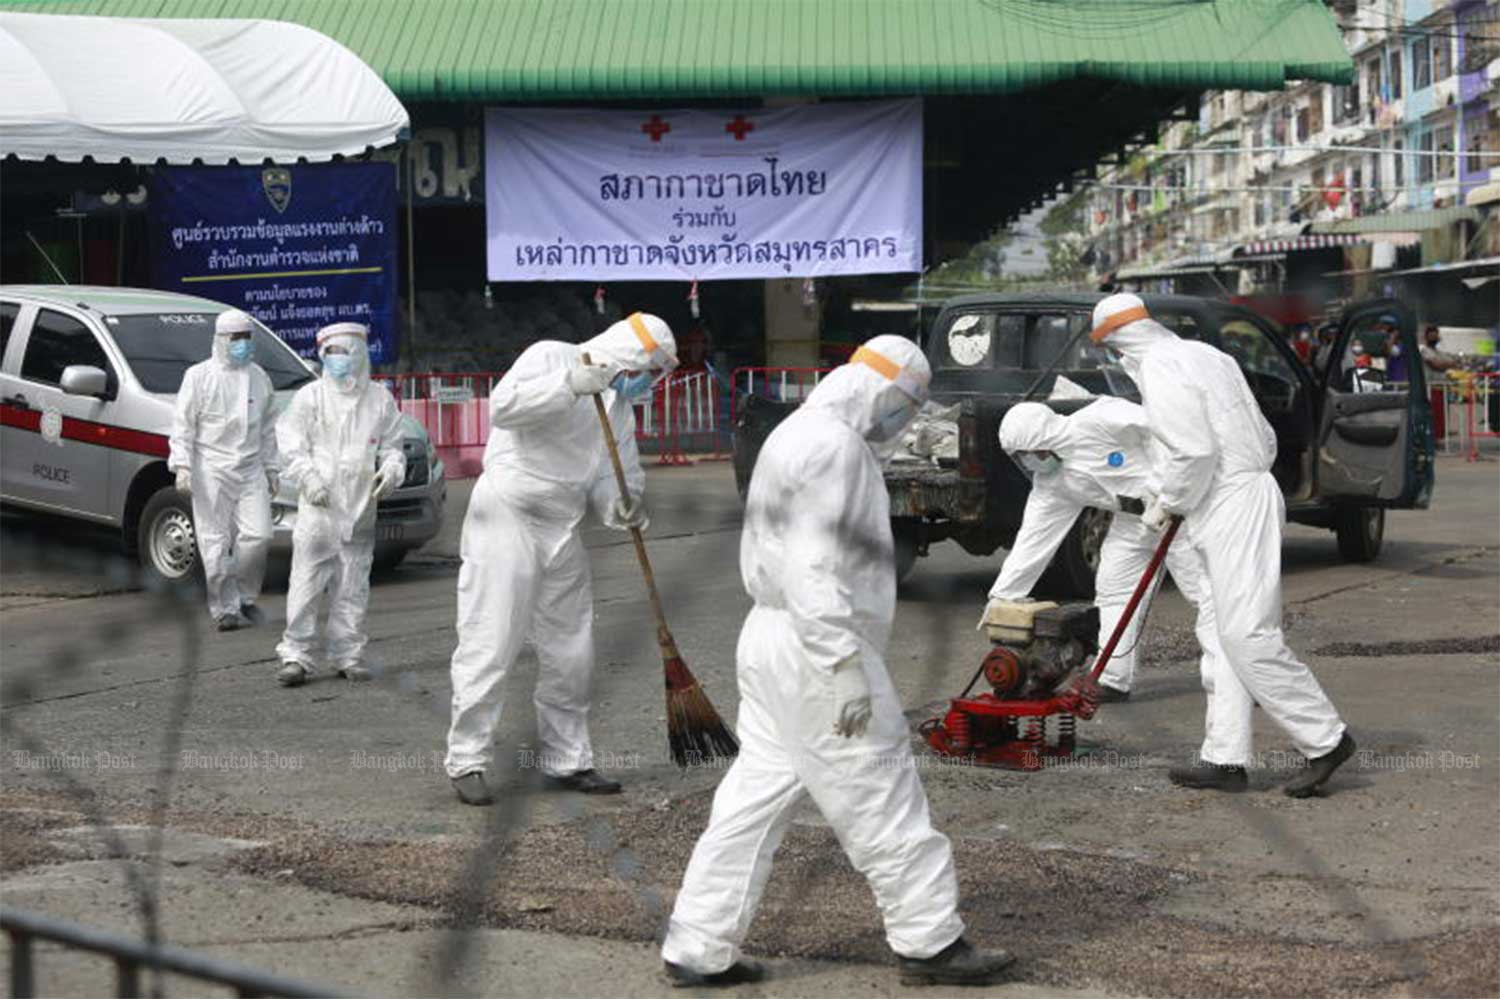 Workers clean up the Central Shrimp Market in Samut Sakhon, the centre of a new Covid-19 outbreak that has resulted in hundreds of new infections among migrant workers and dozens more among Thais. (Photo by Arnun Chonmahatrakool)